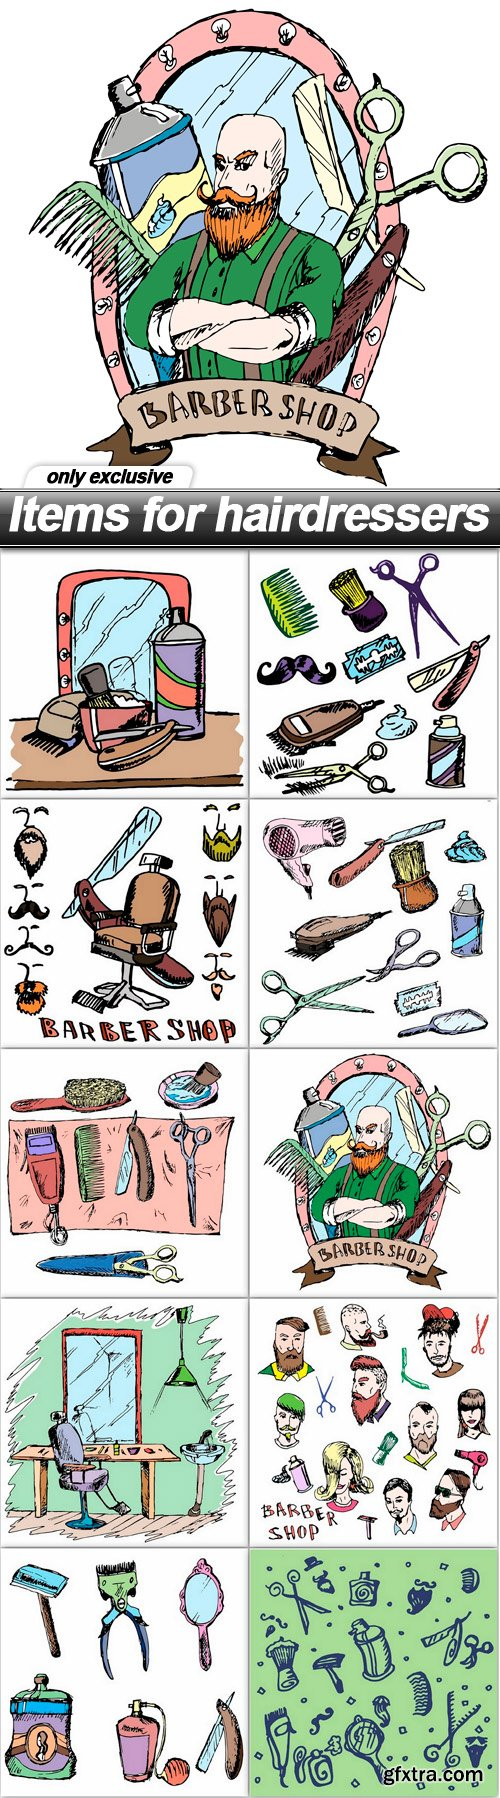 Items for hairdressers - 10 EPS